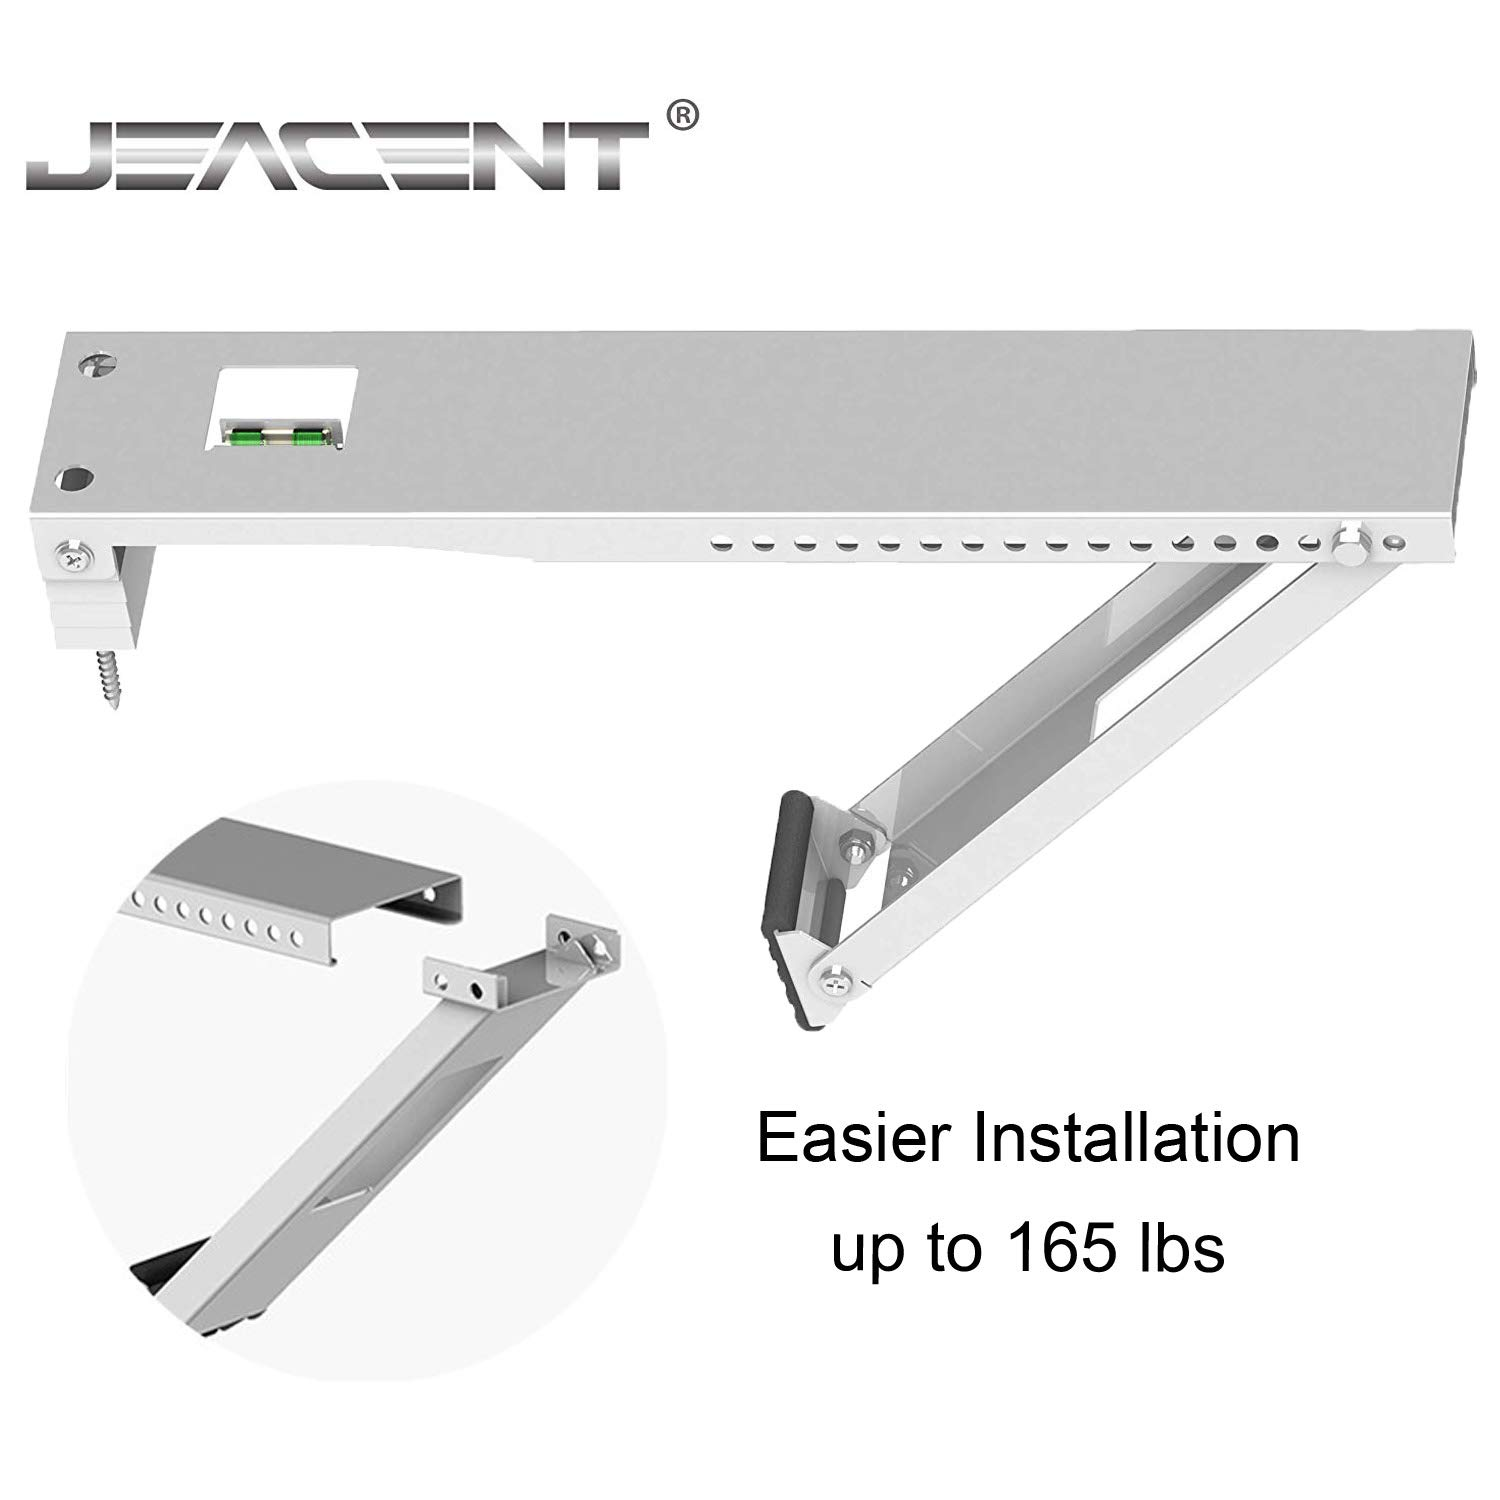 Window Air Conditioner Brackets, Universal AC Window Support Bracket - Heavy Duty, Holds Up to 165 lbs